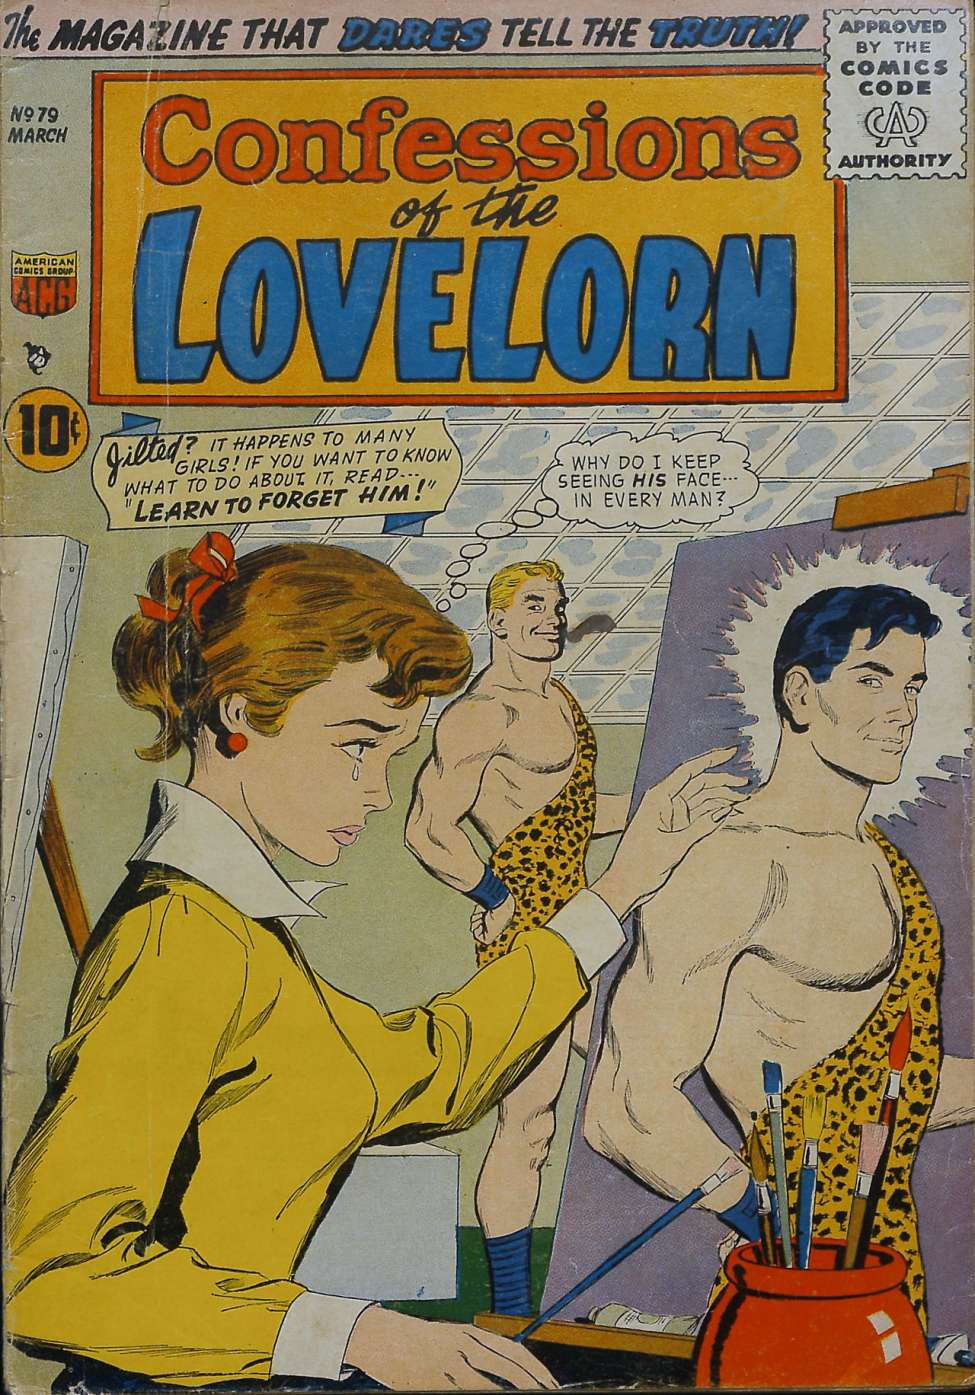 Comic Book Cover For Confessions of the Lovelorn #79